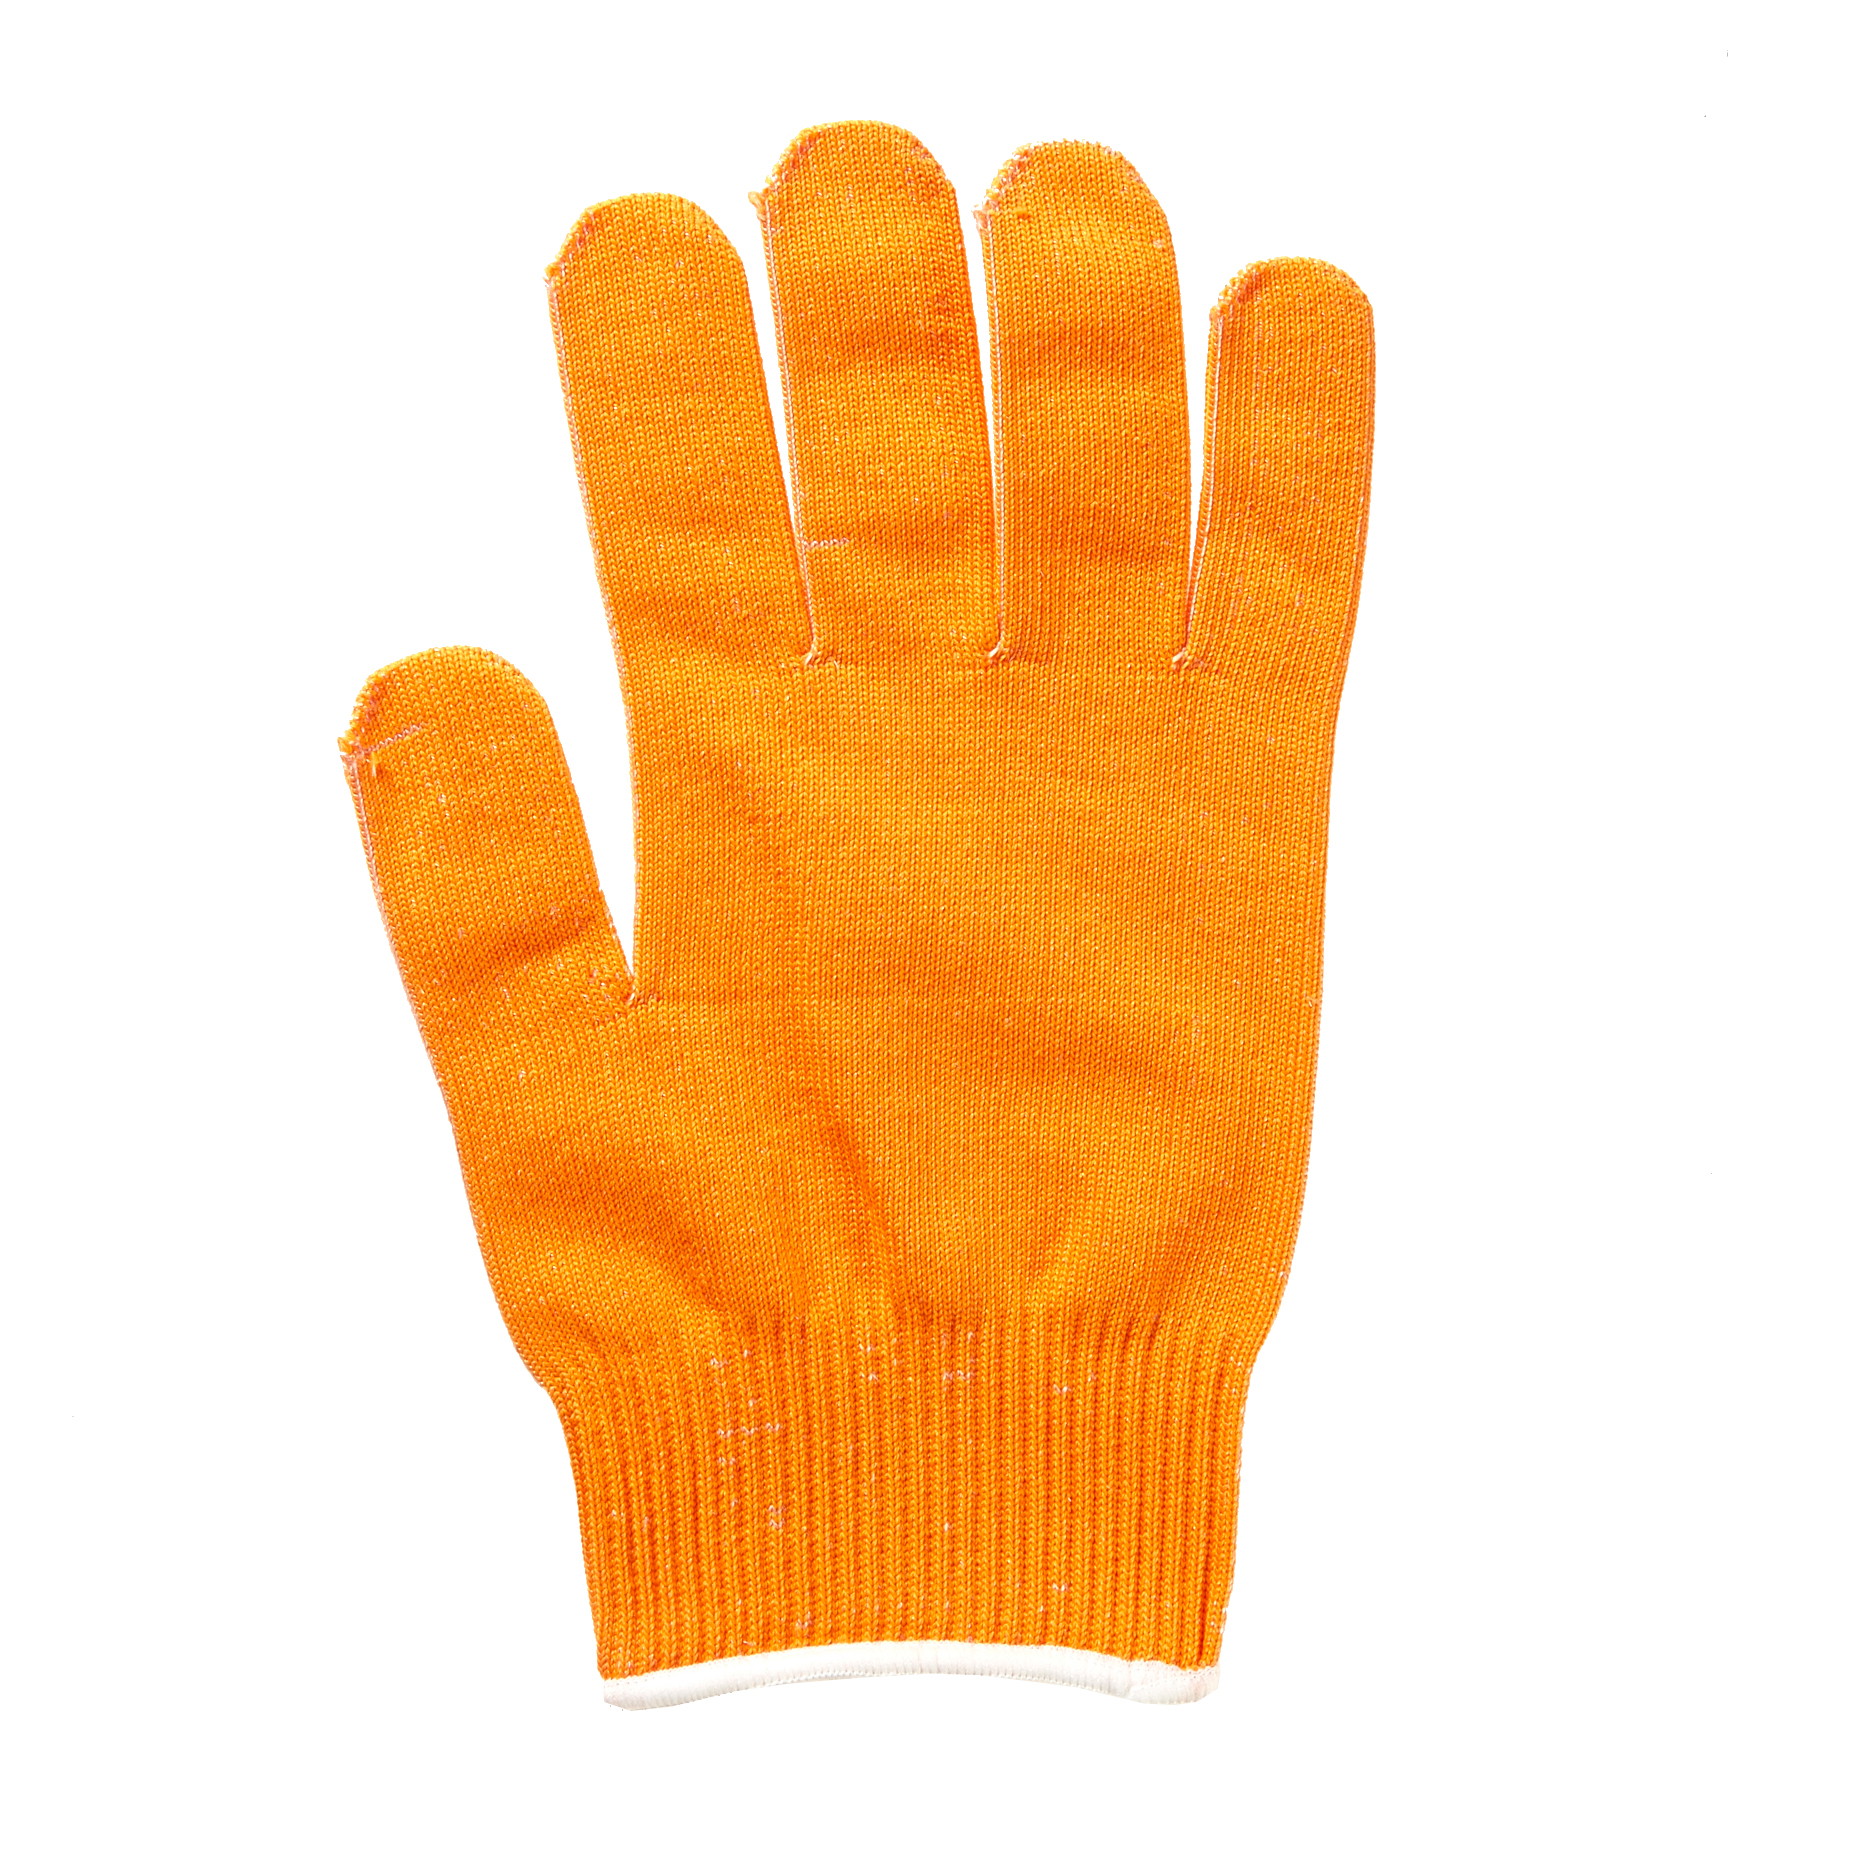 Mercer Culinary M33415ORL glove, cut resistant